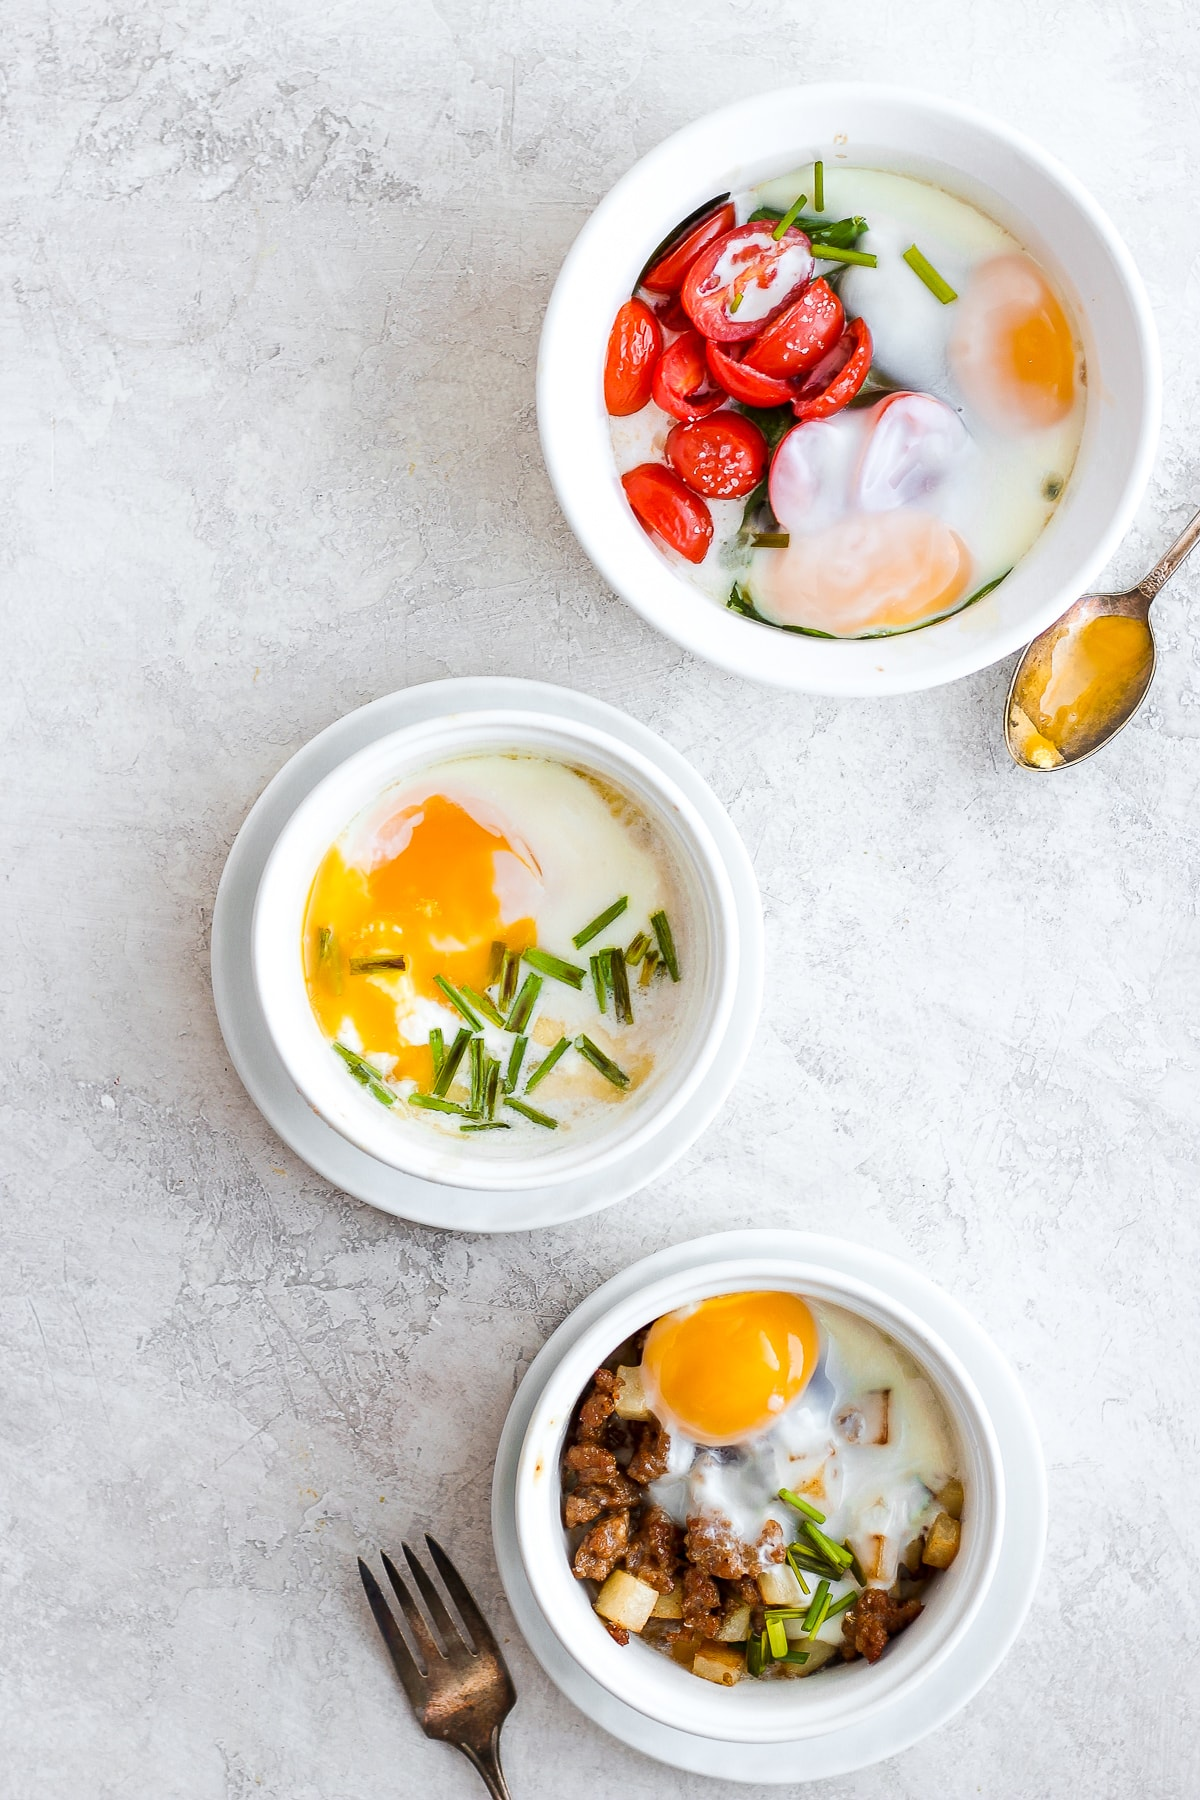 Baked Eggs Three Ways - a simple and delicious breakfast three yummy ways! #dairyfree #bakedeggs #breakfast #healthybreakfast #whole30 #paleo